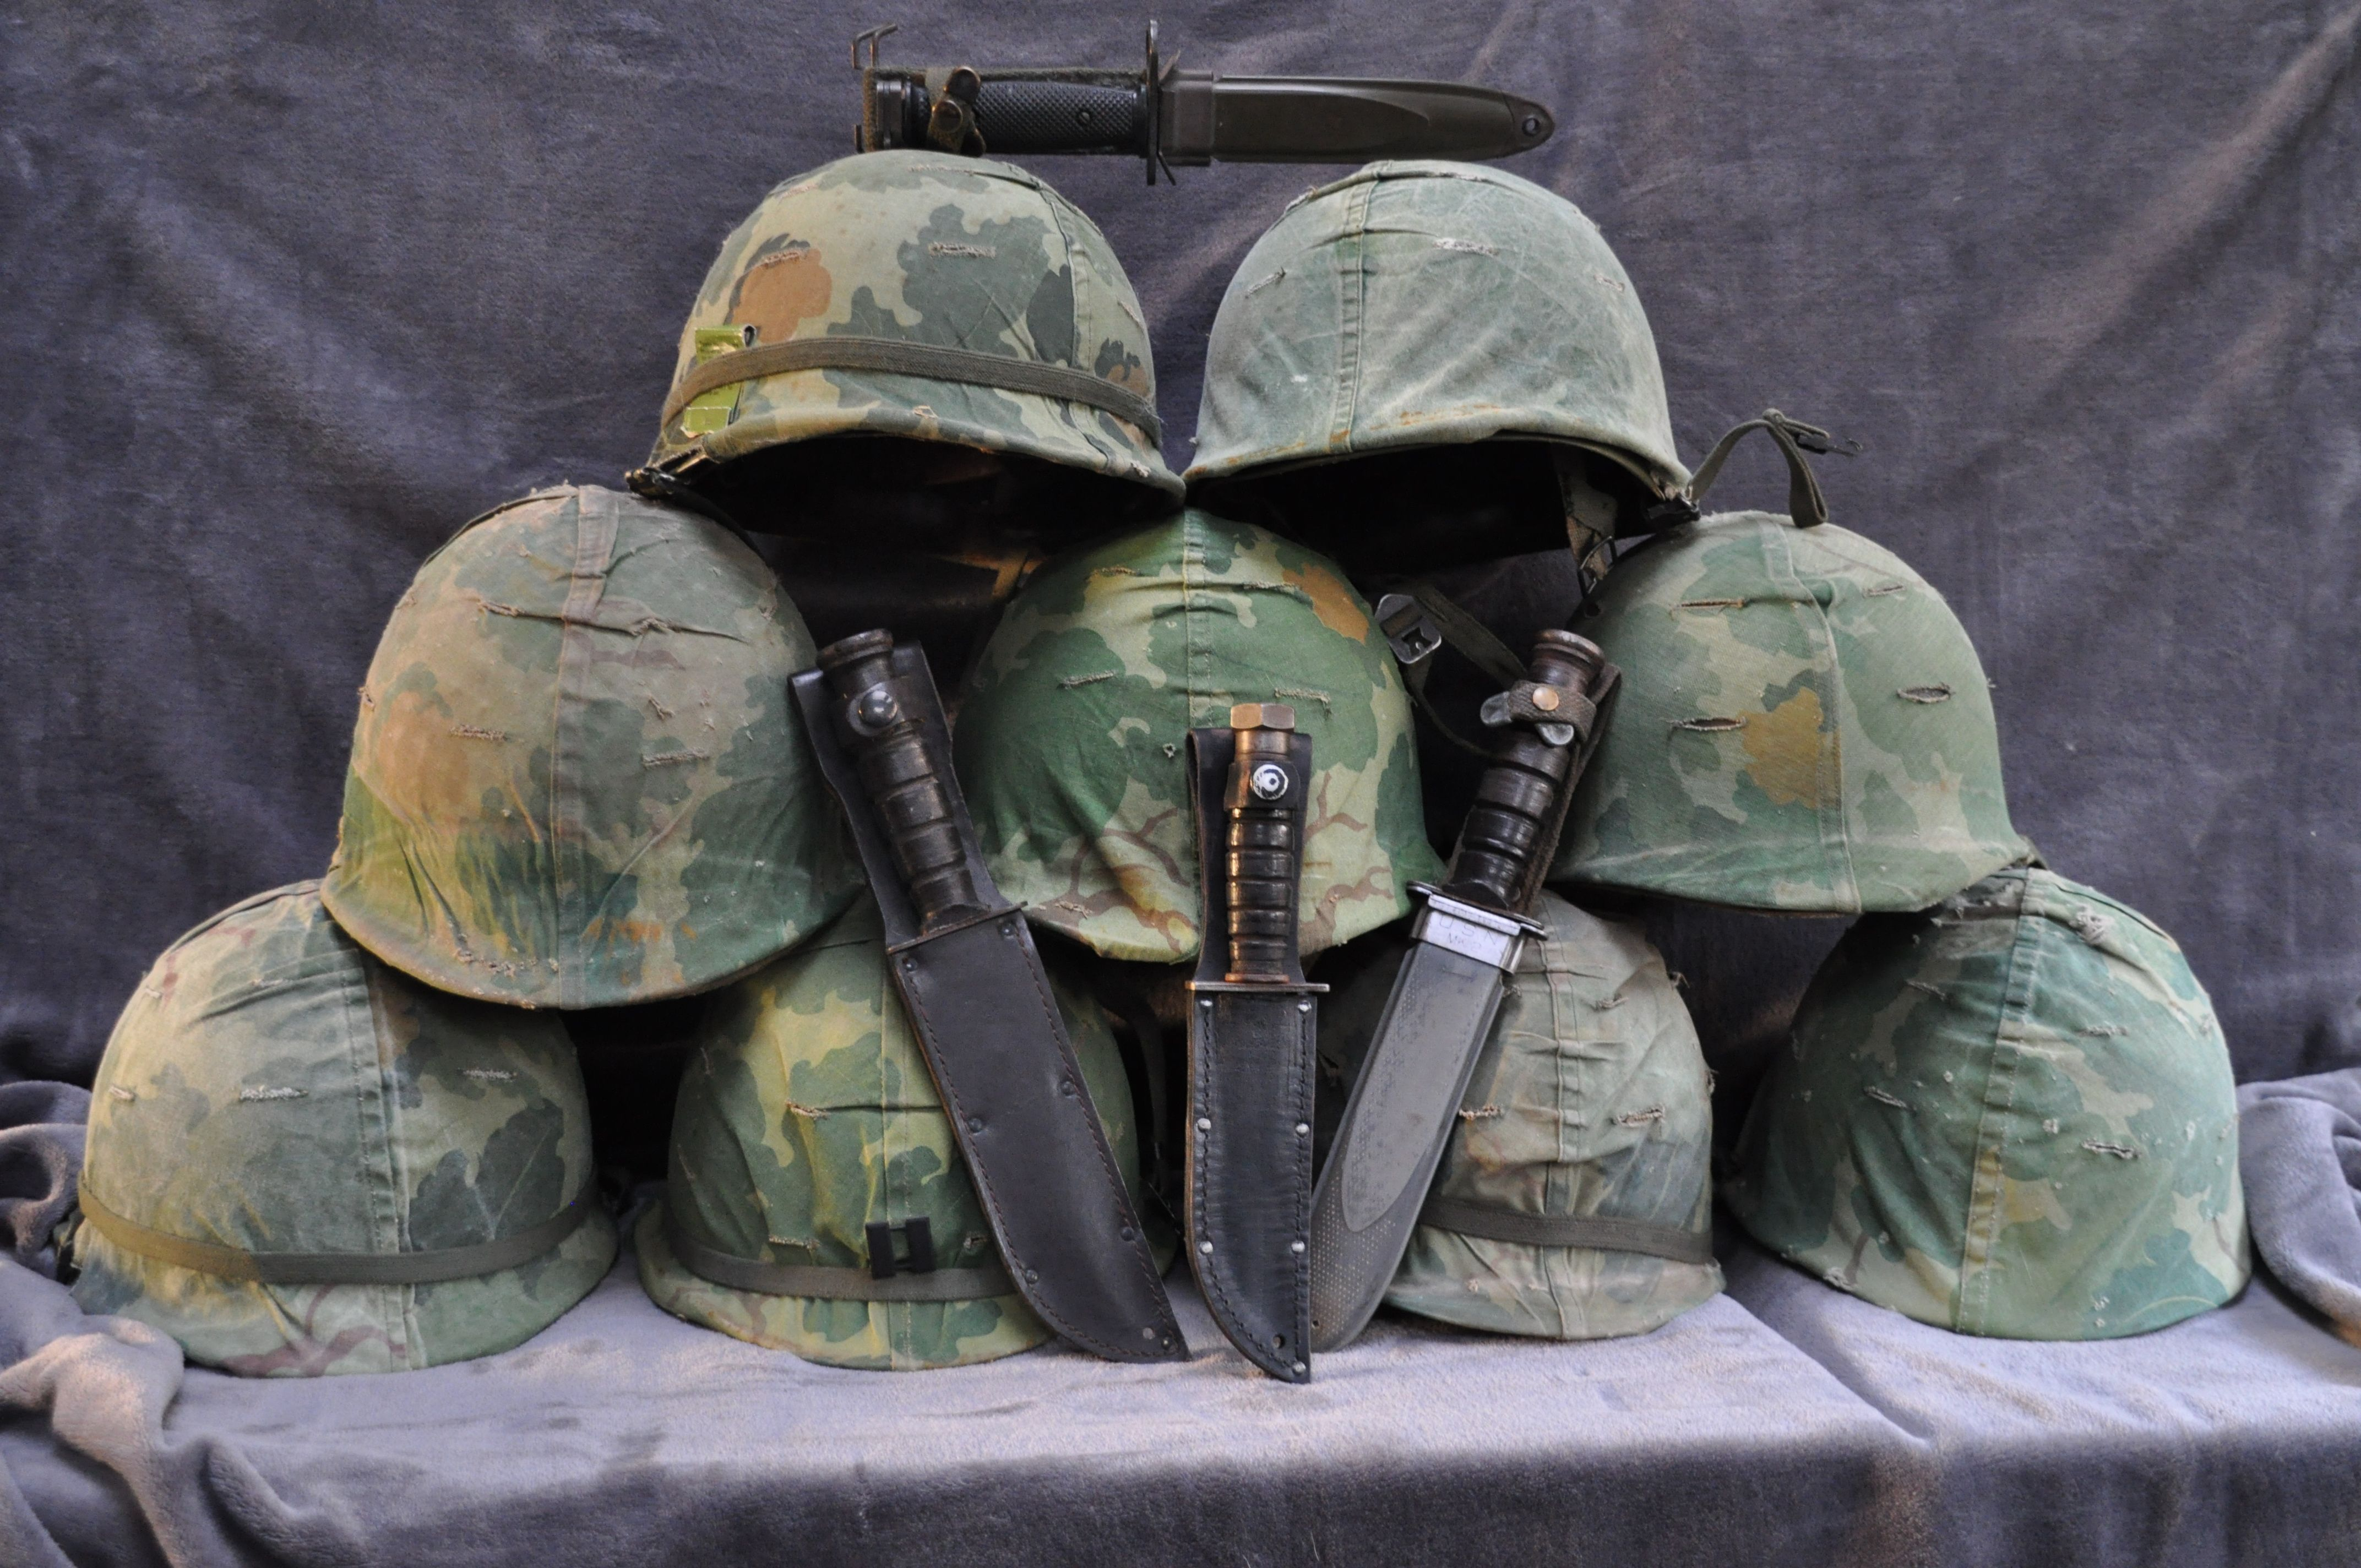 All M1 Helmets From The Vietnam War Also A Few Camillus